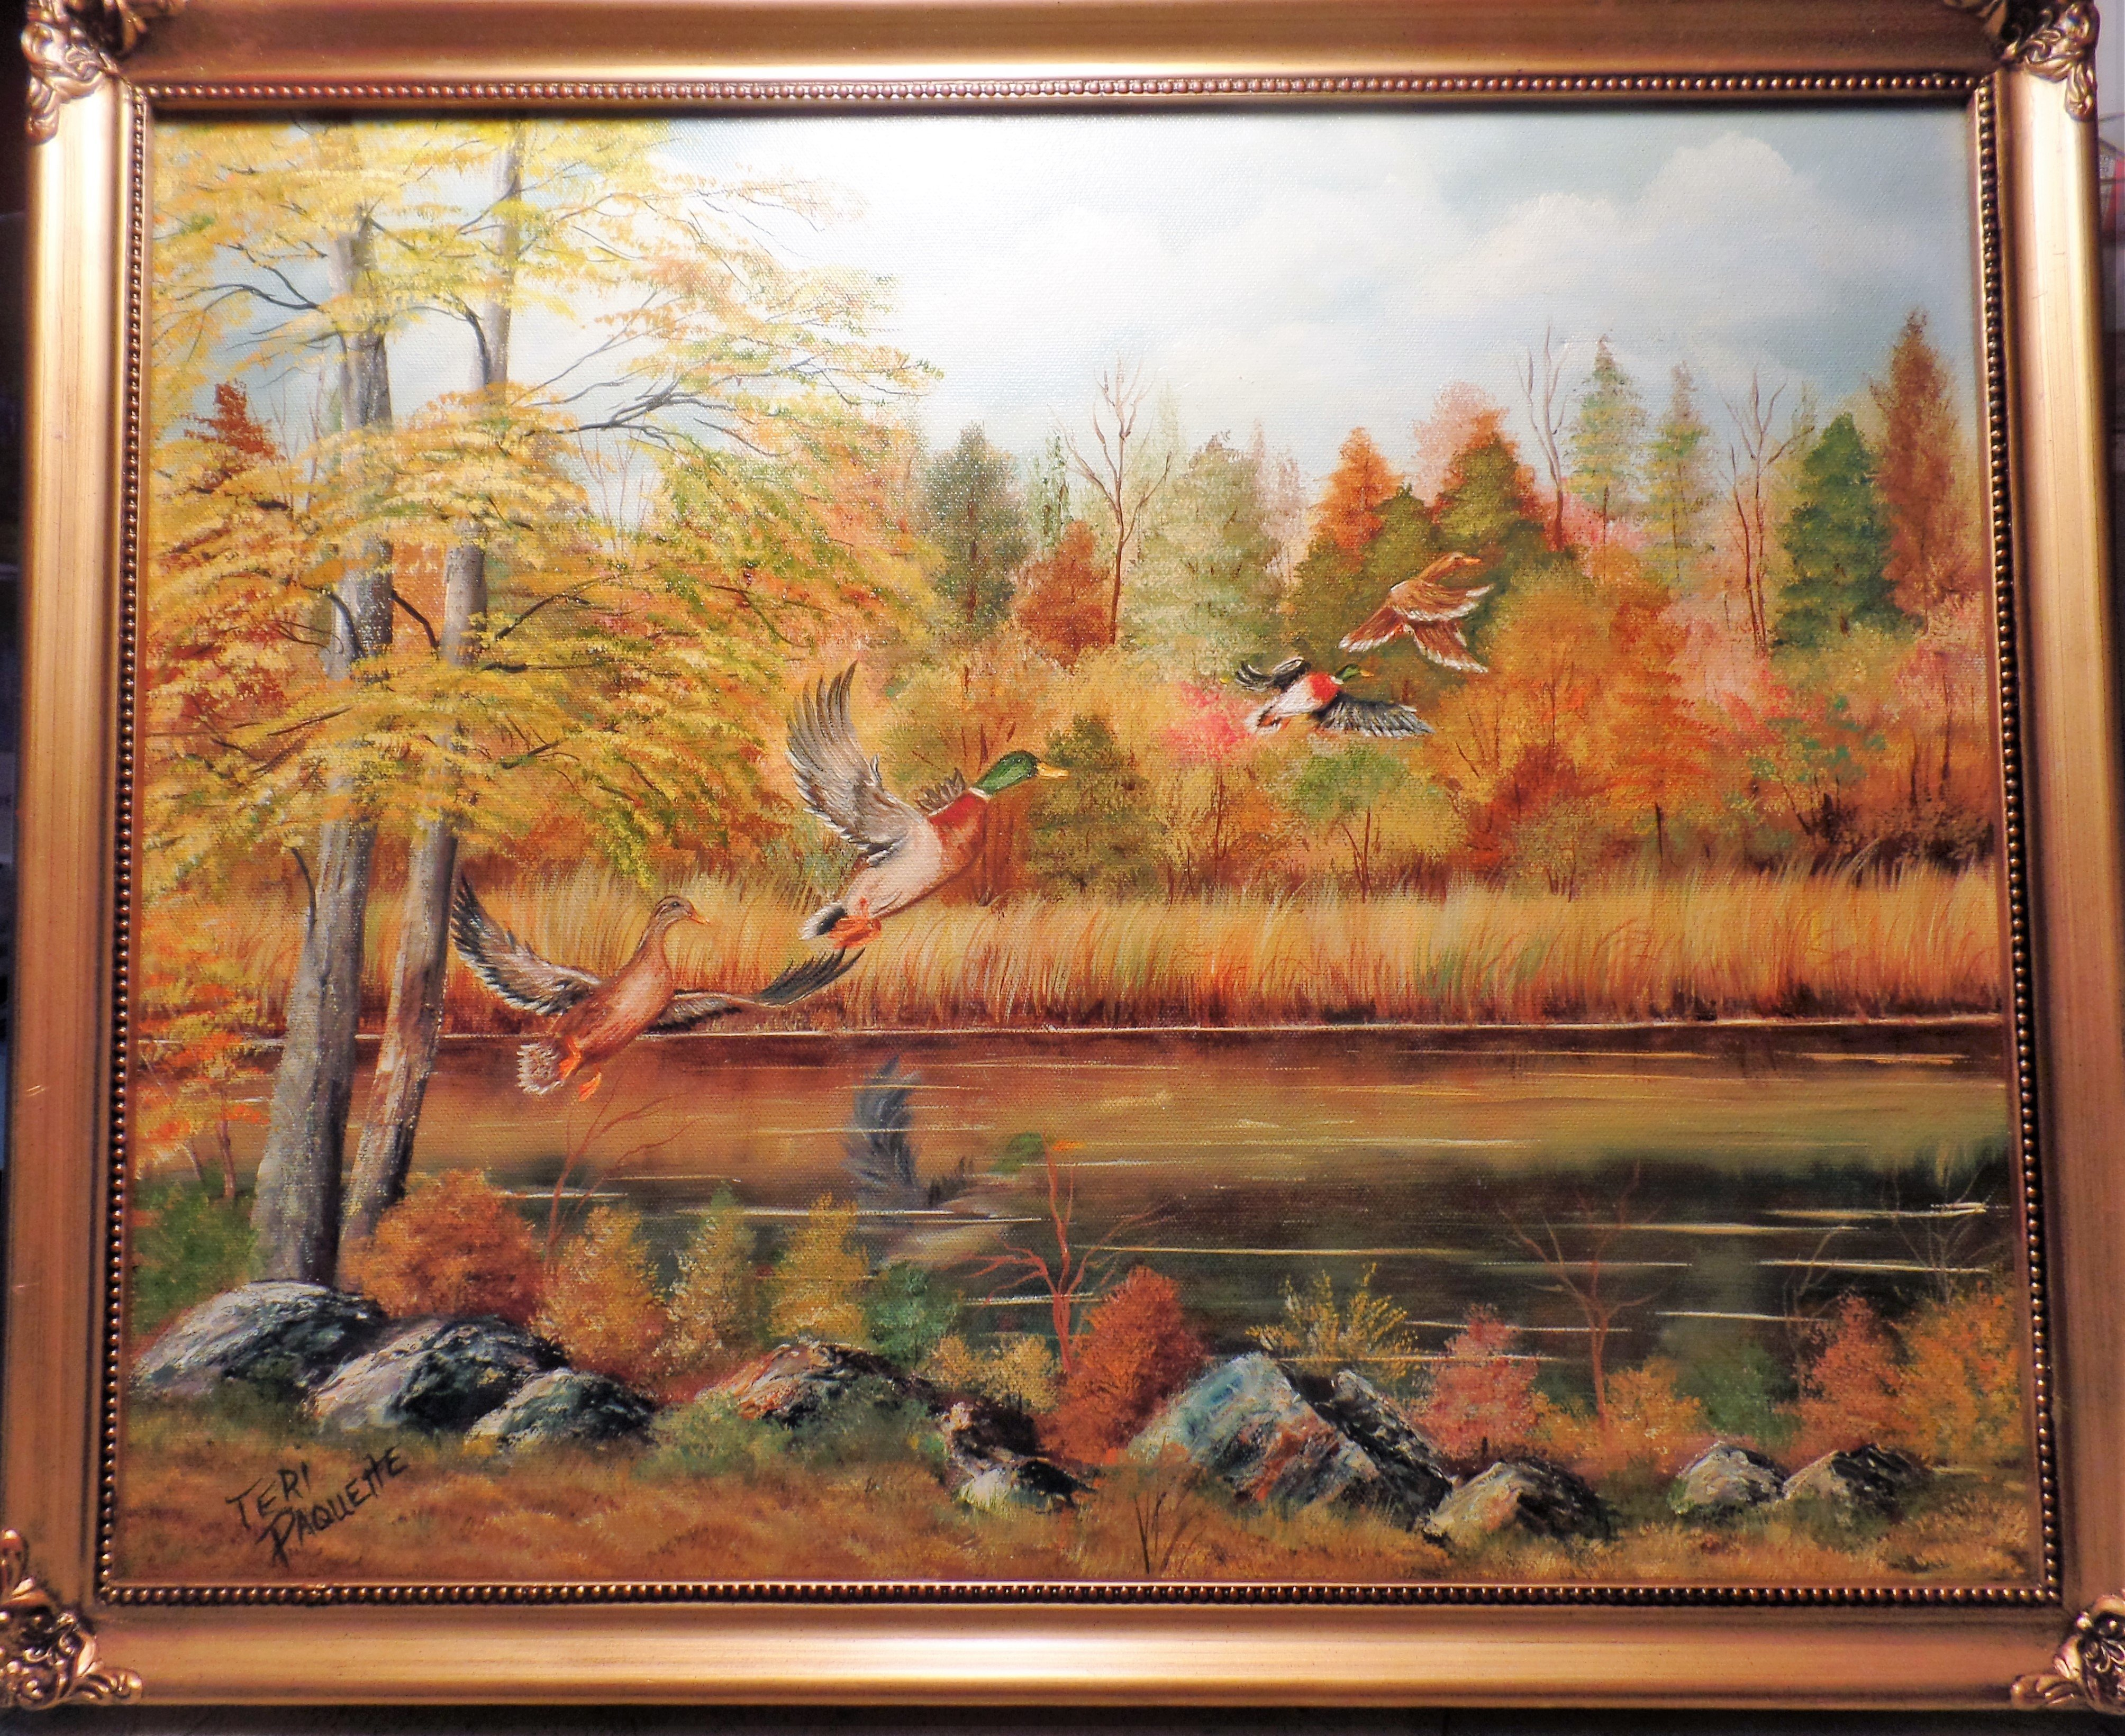 Teri Paquette: 'mallards in flight', 2019 Oil Painting, Landscape. I OFTEN TAKE LONG WALKS AND THIS SIGHT WAS A WELCOME SIGHT- IT IS AN ORIGINAL OIL PAINTING IN A ORNATE GOLD FRAME- SIGNED...